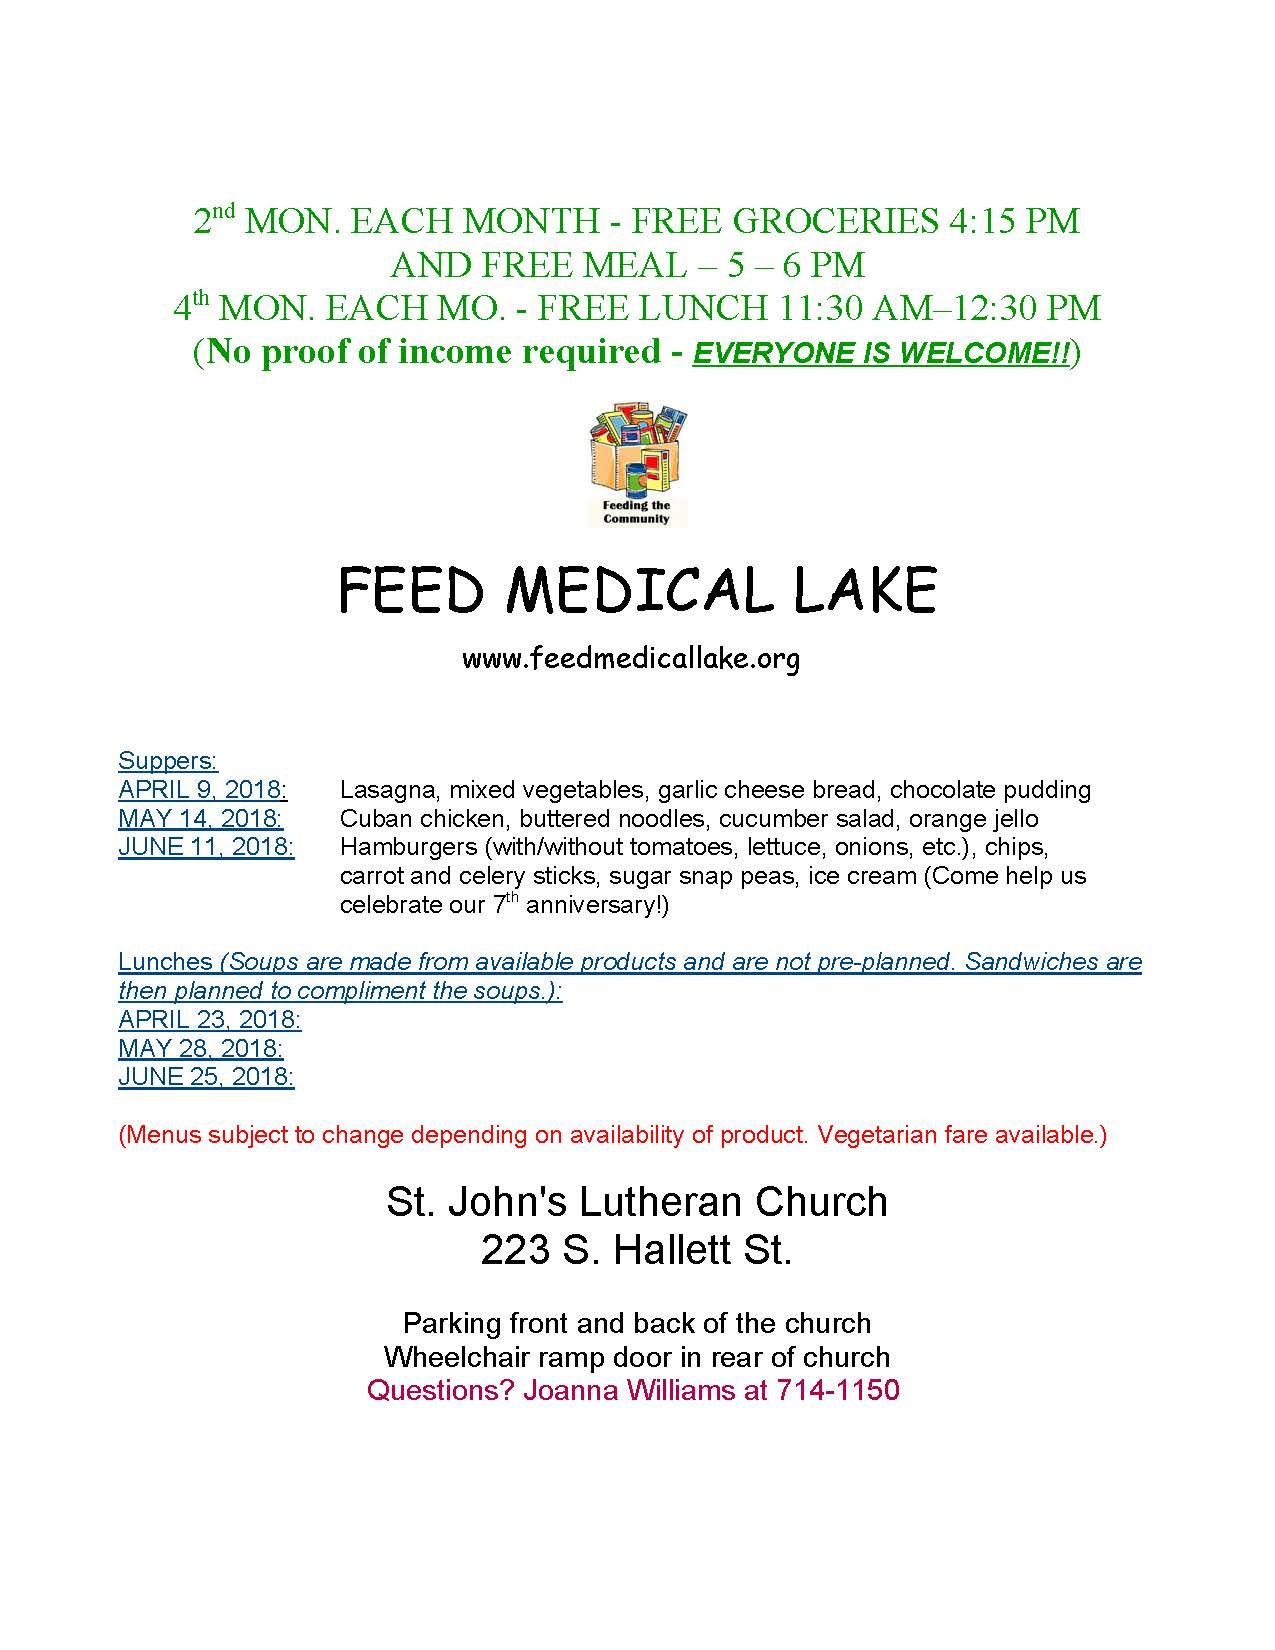 Feed Medical Lake Flyer for April, May and June 2018